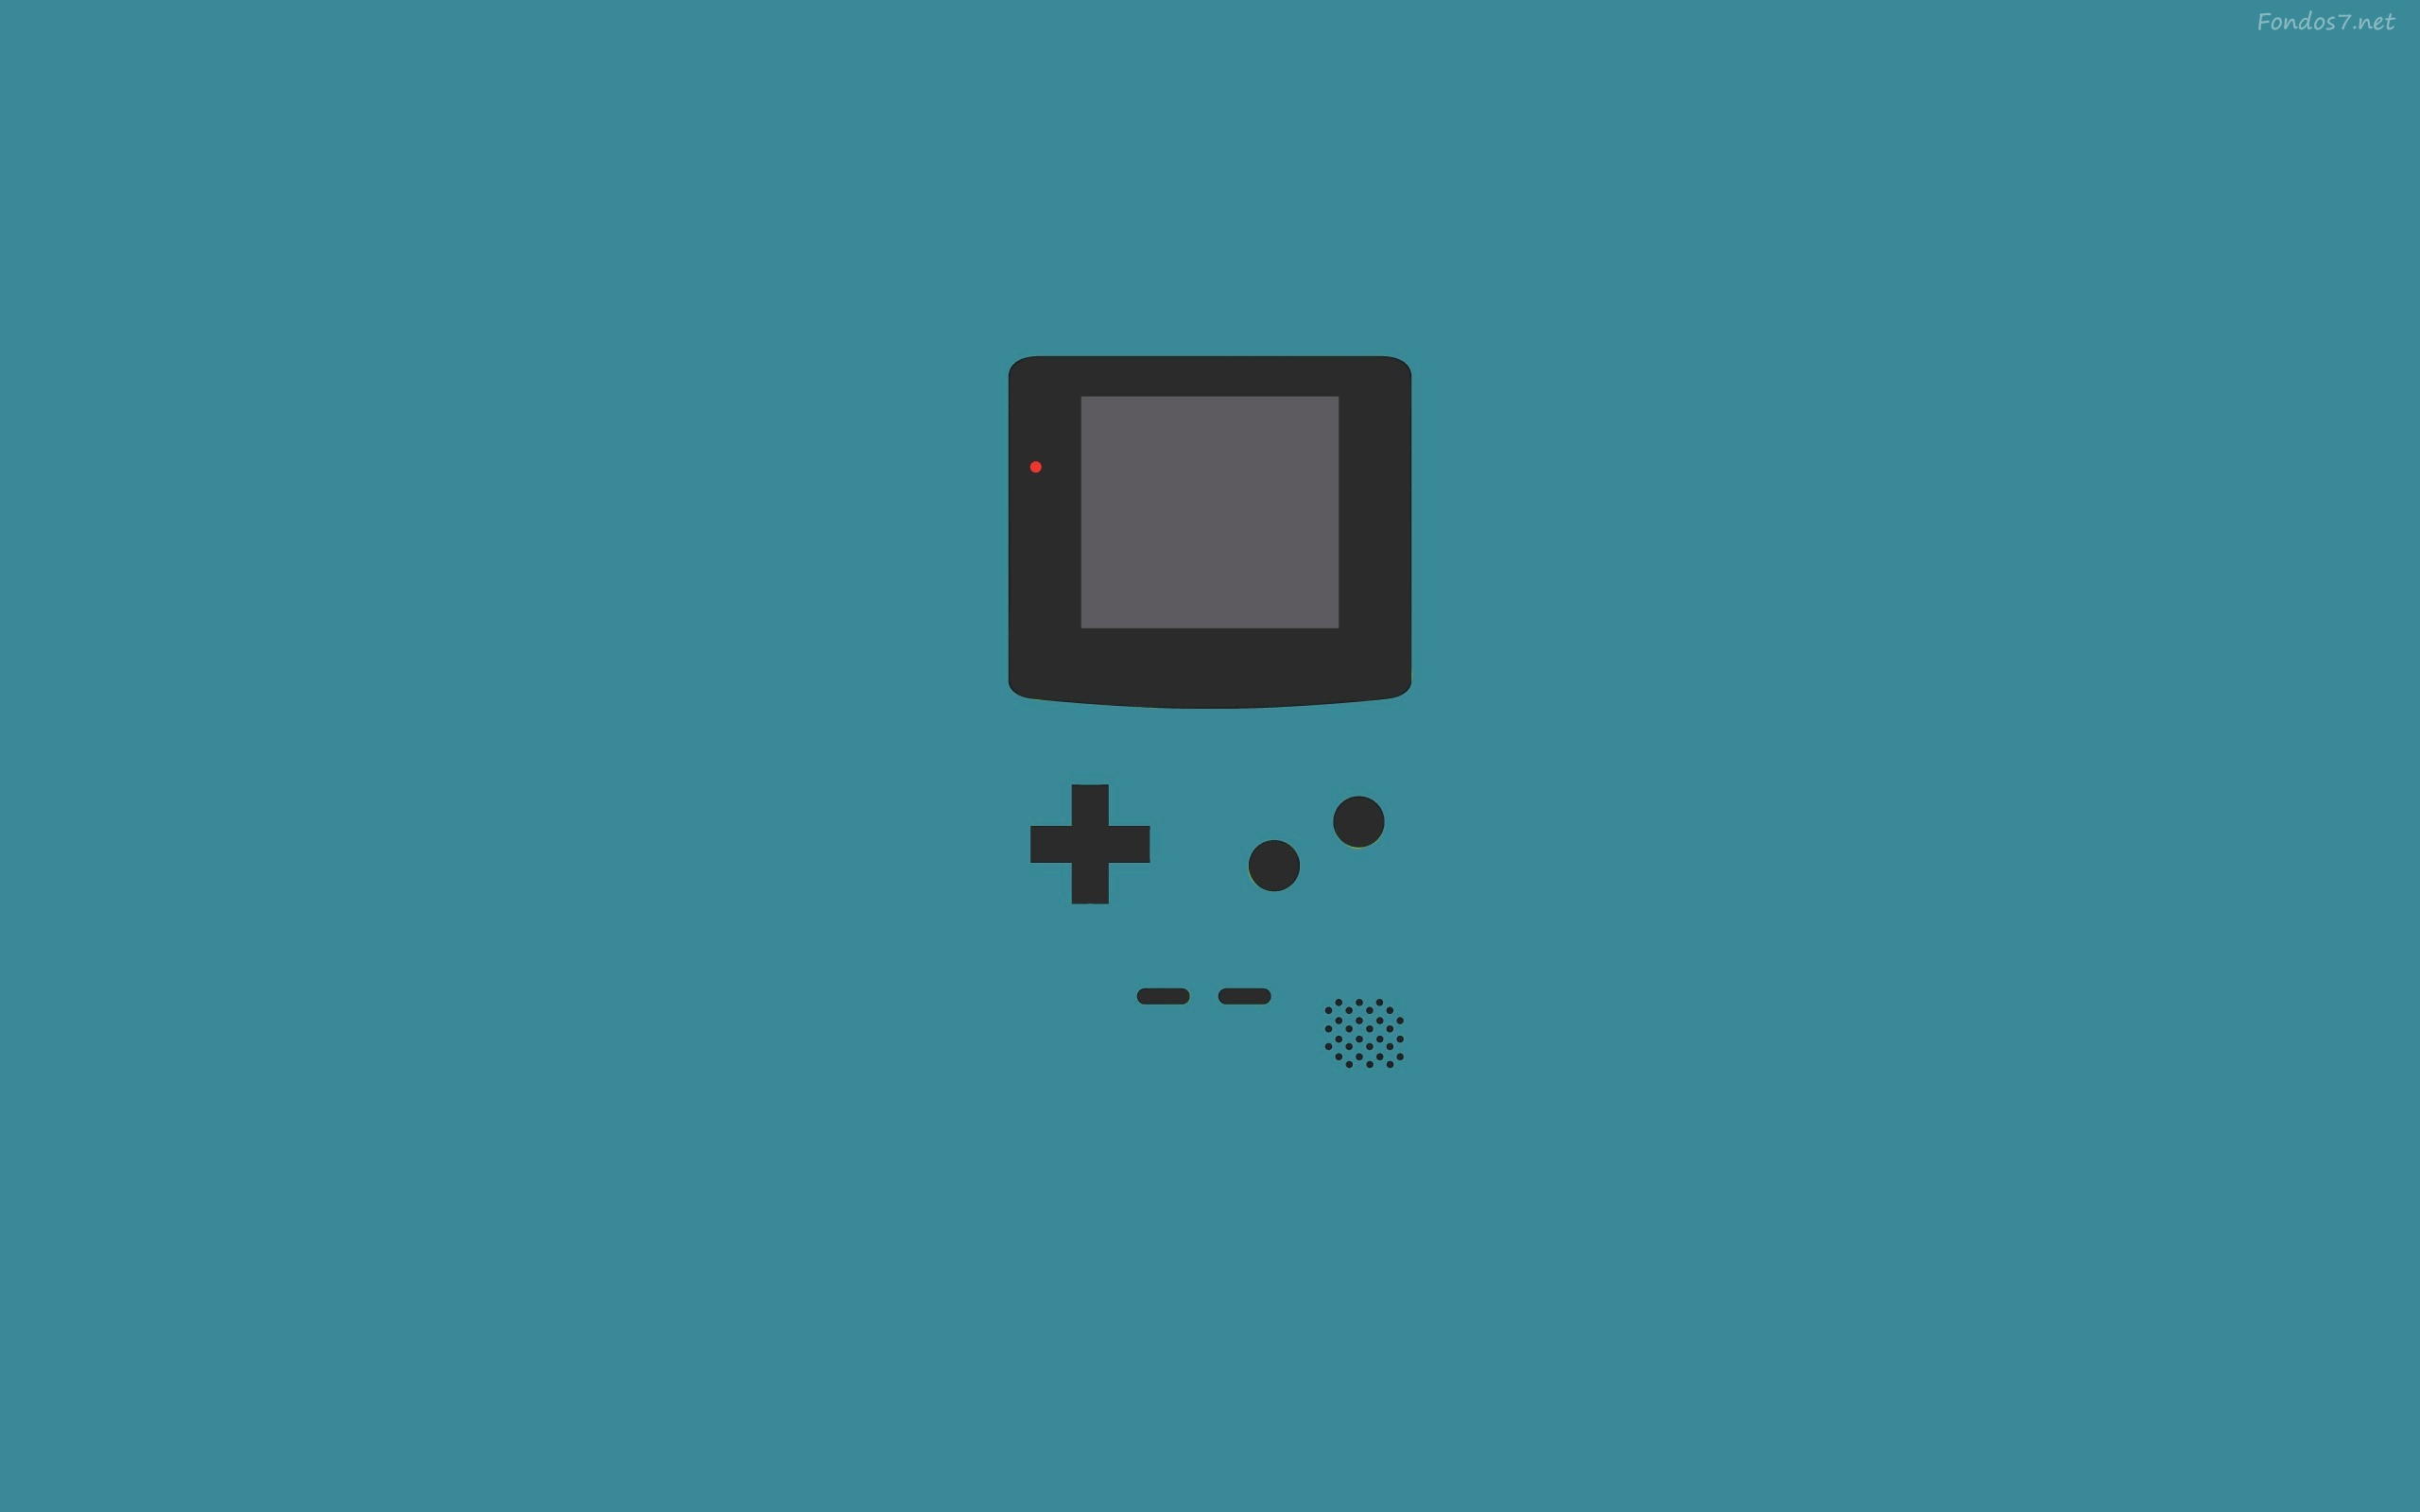 Game boy advance vector 2560x1600